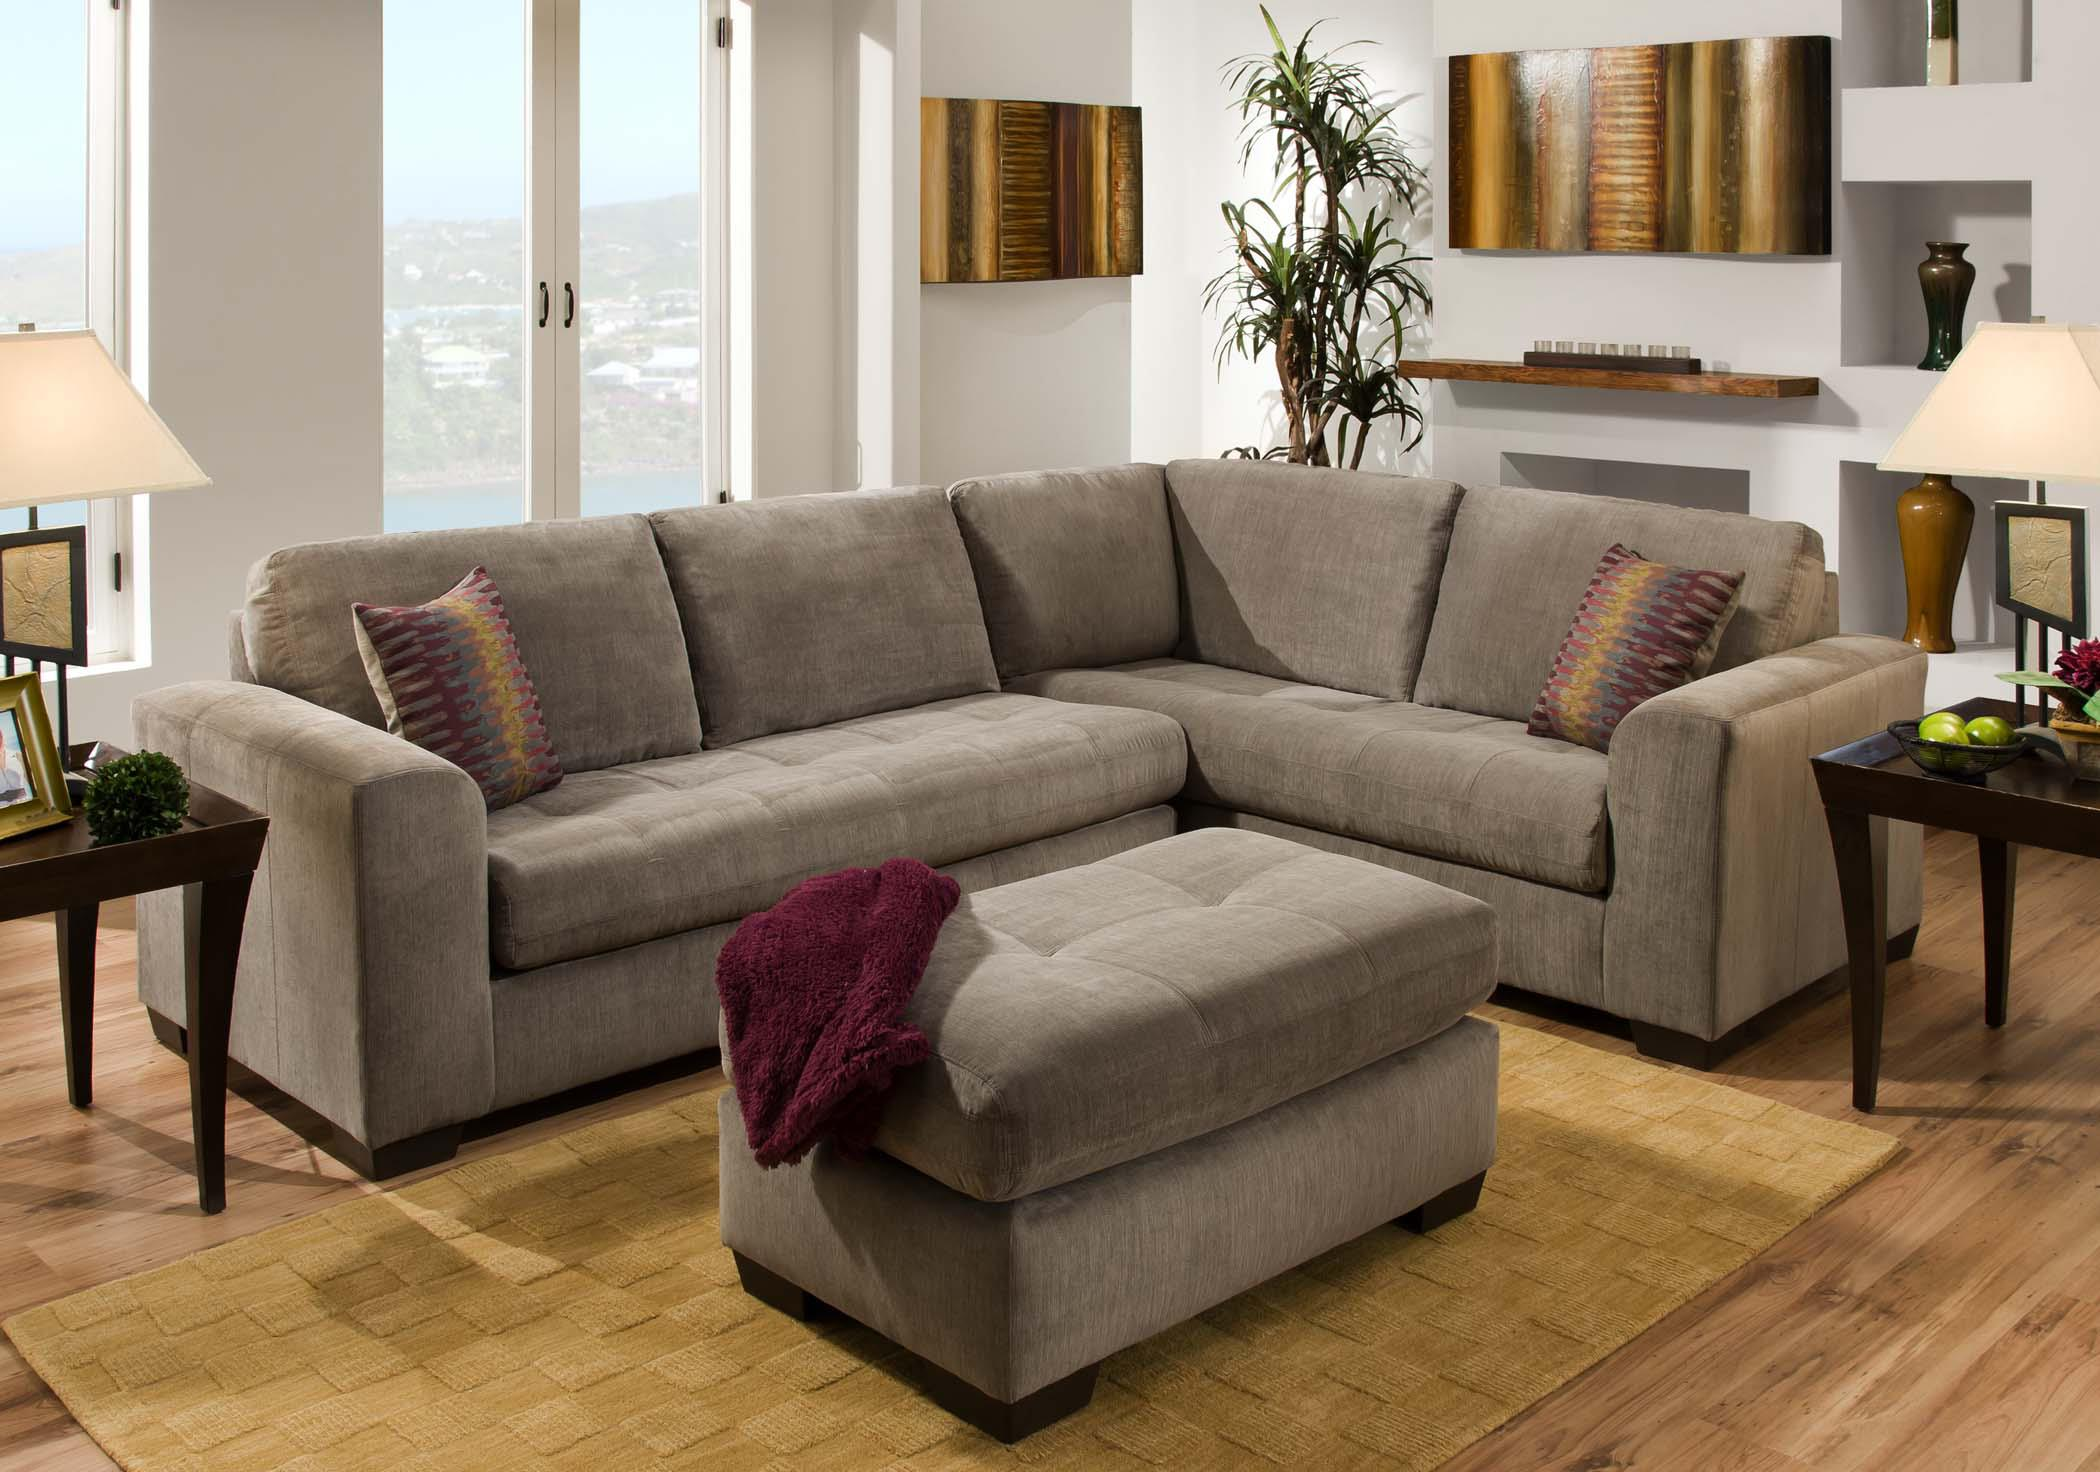 Ordinaire Contemporary Sectional Sofa With Corner Construction   1230 By American  Furniture   Wilcox Furniture   Sectional Sofas Corpus Christi, Kingsville,  Calallen, ...